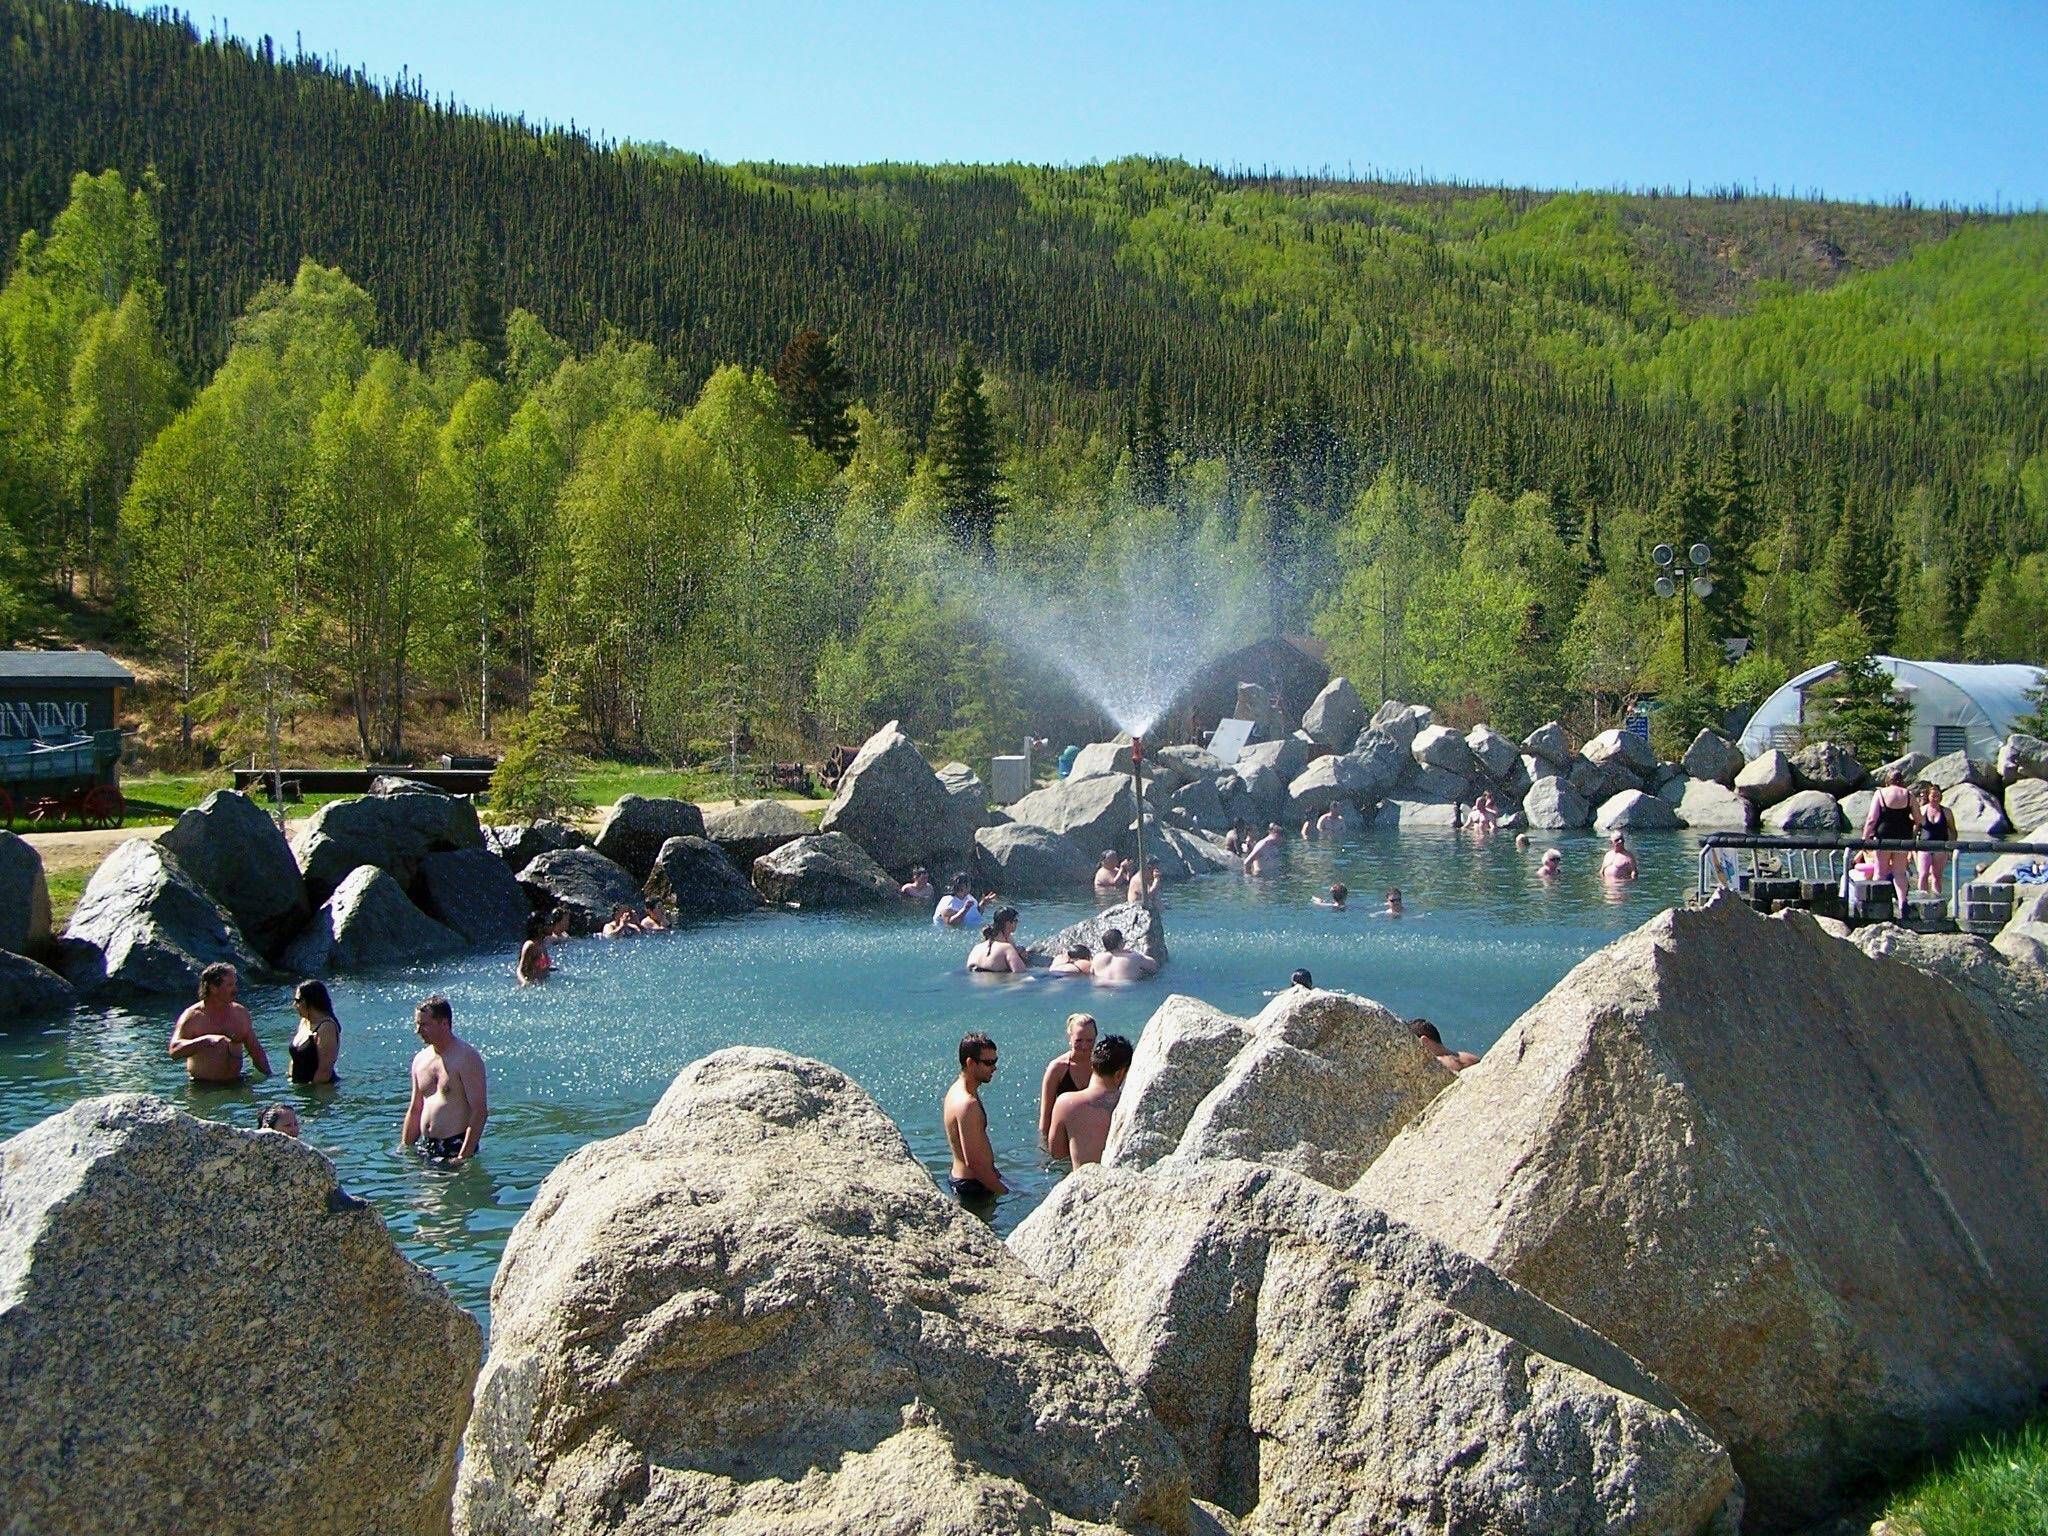 Photo thanks to Summer Hot Springs Lake, Chena Hot Springs Resort, Fairbanks